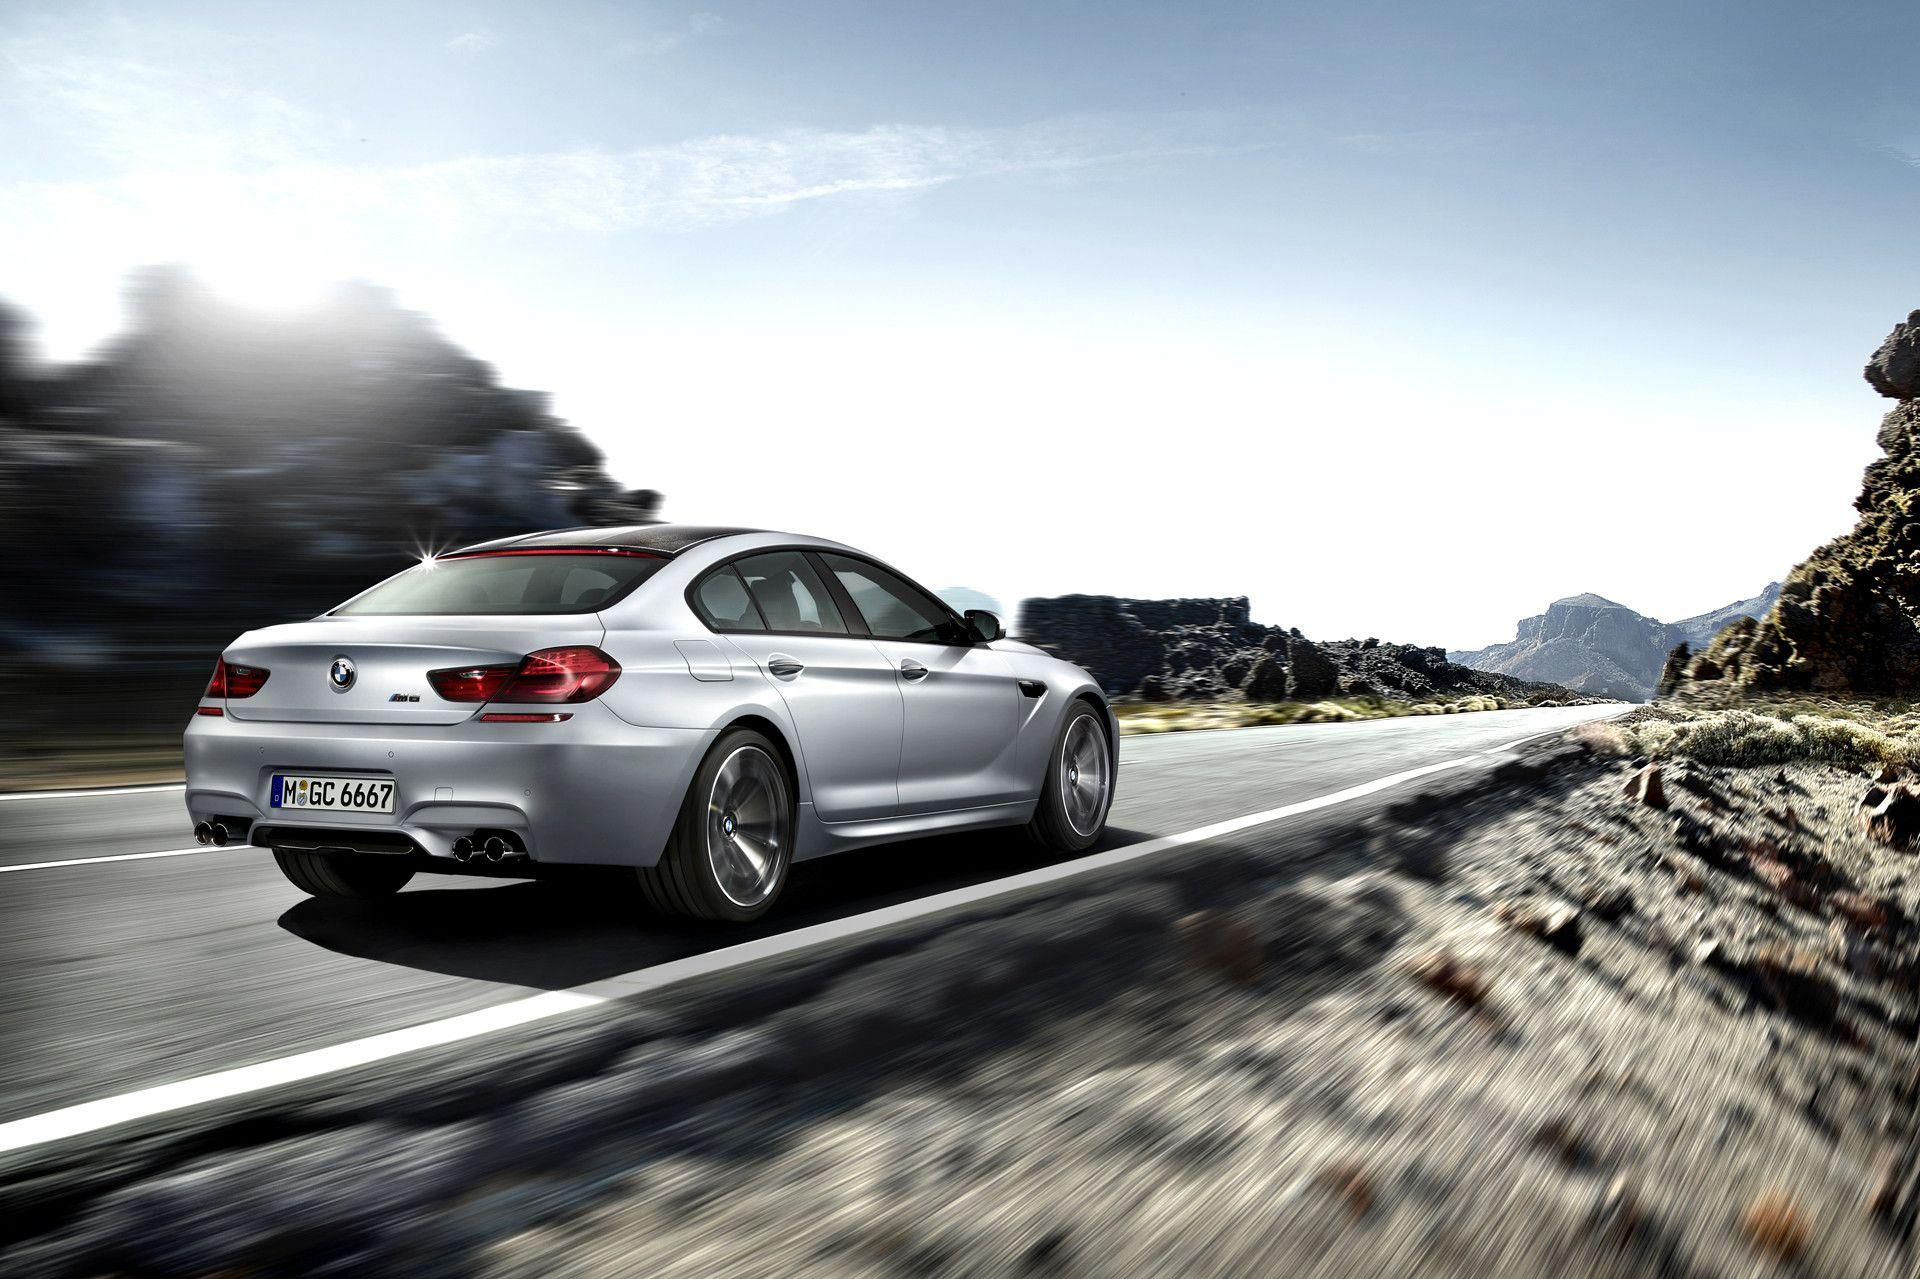 BMW M Wallpapers Group with items